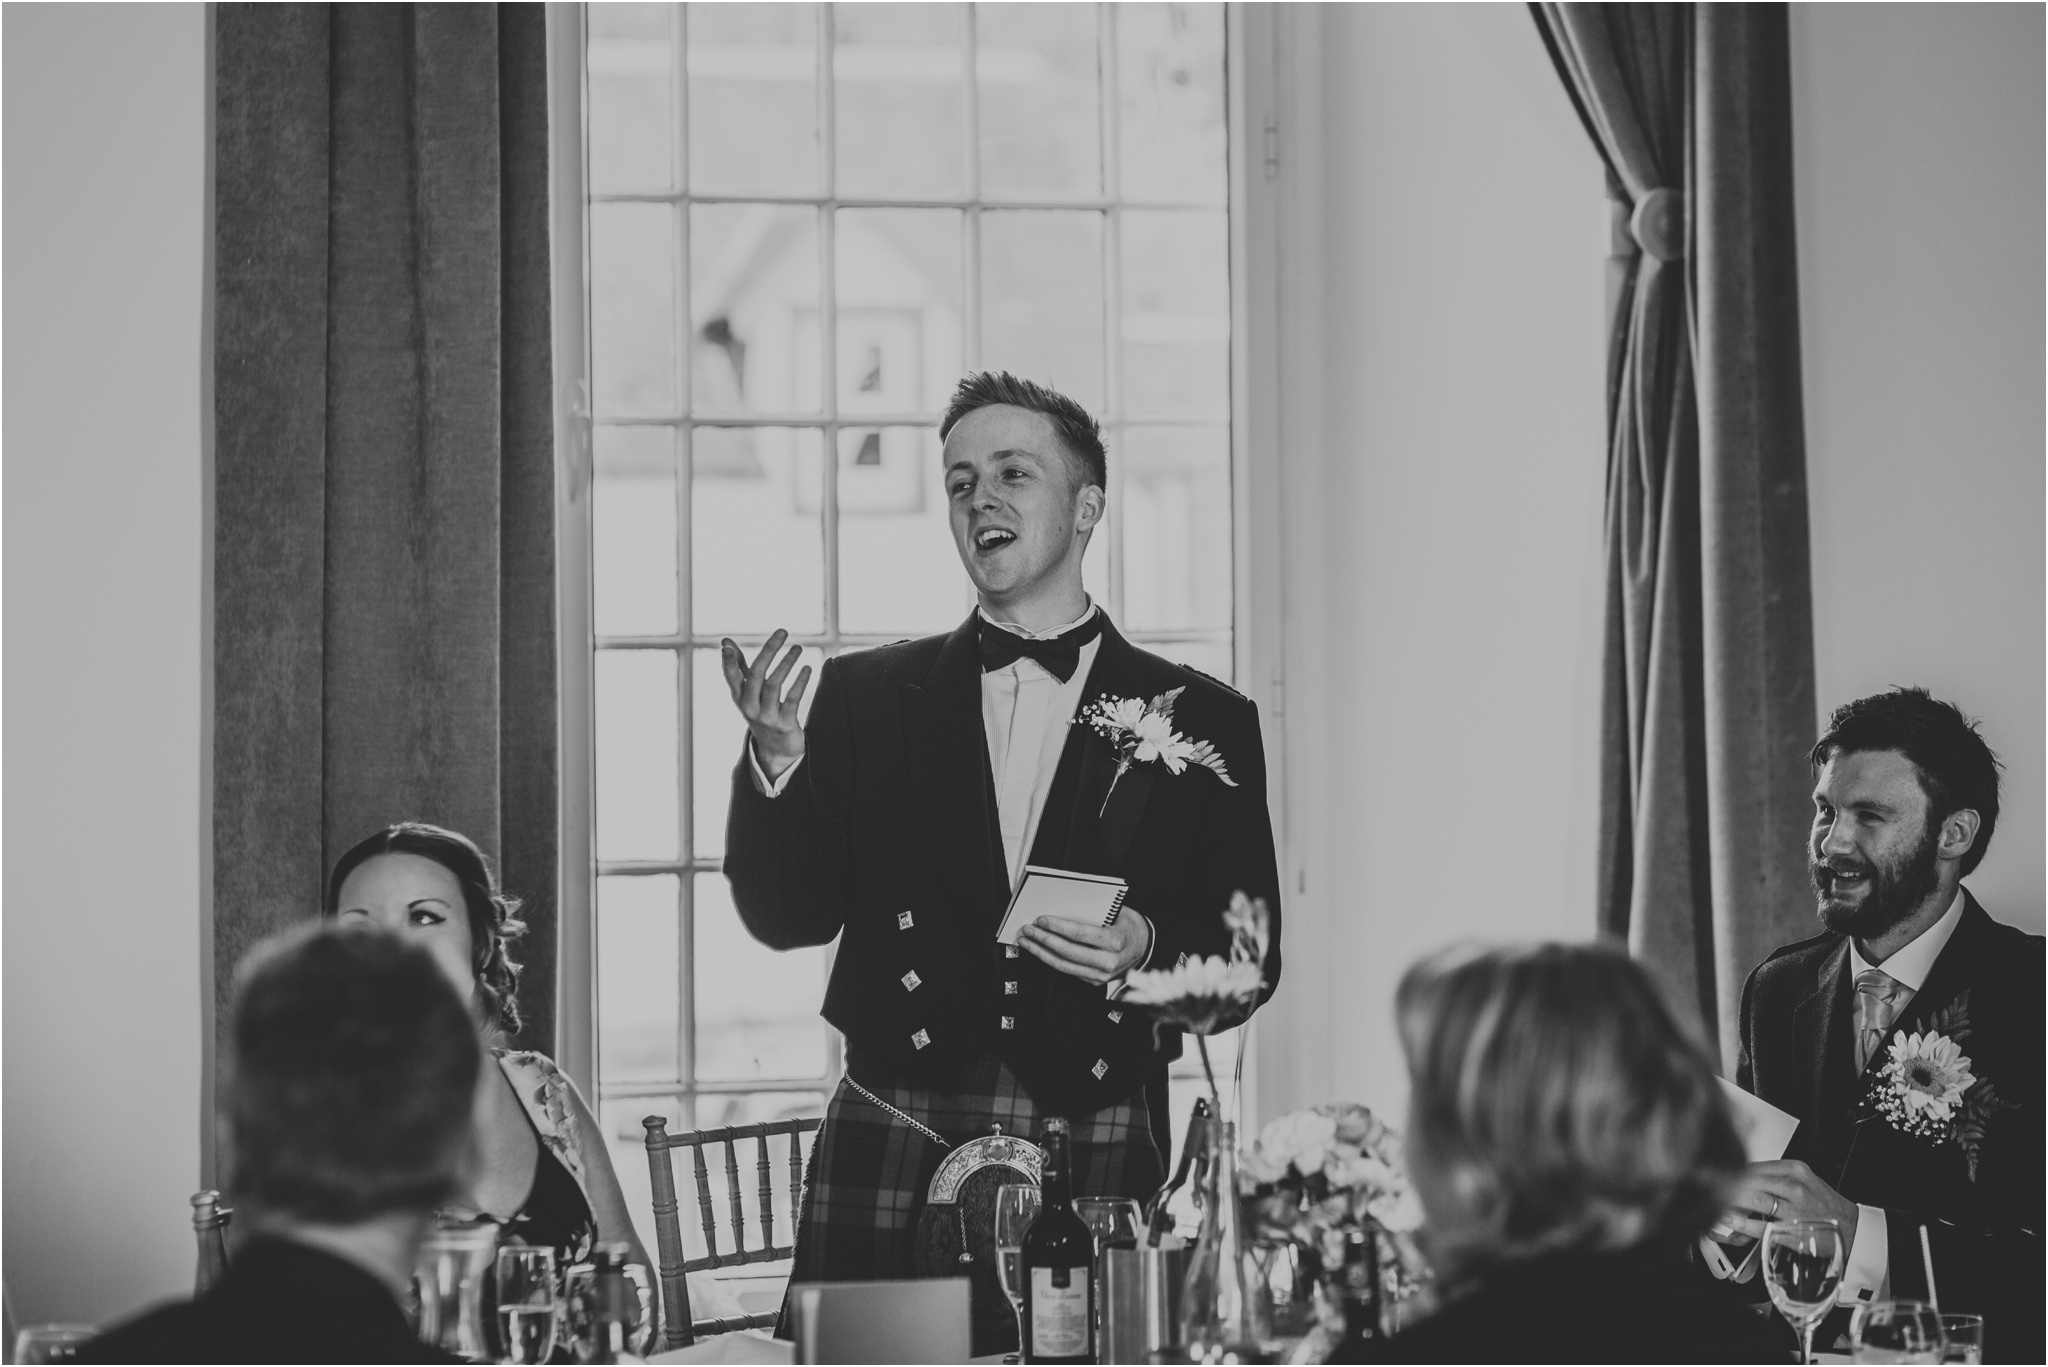 Photography 78 - Glasgow Wedding Photographer - Fraser Thirza - Killearn Village Hall - Three Sisters Bake Wedding_0129.jpg